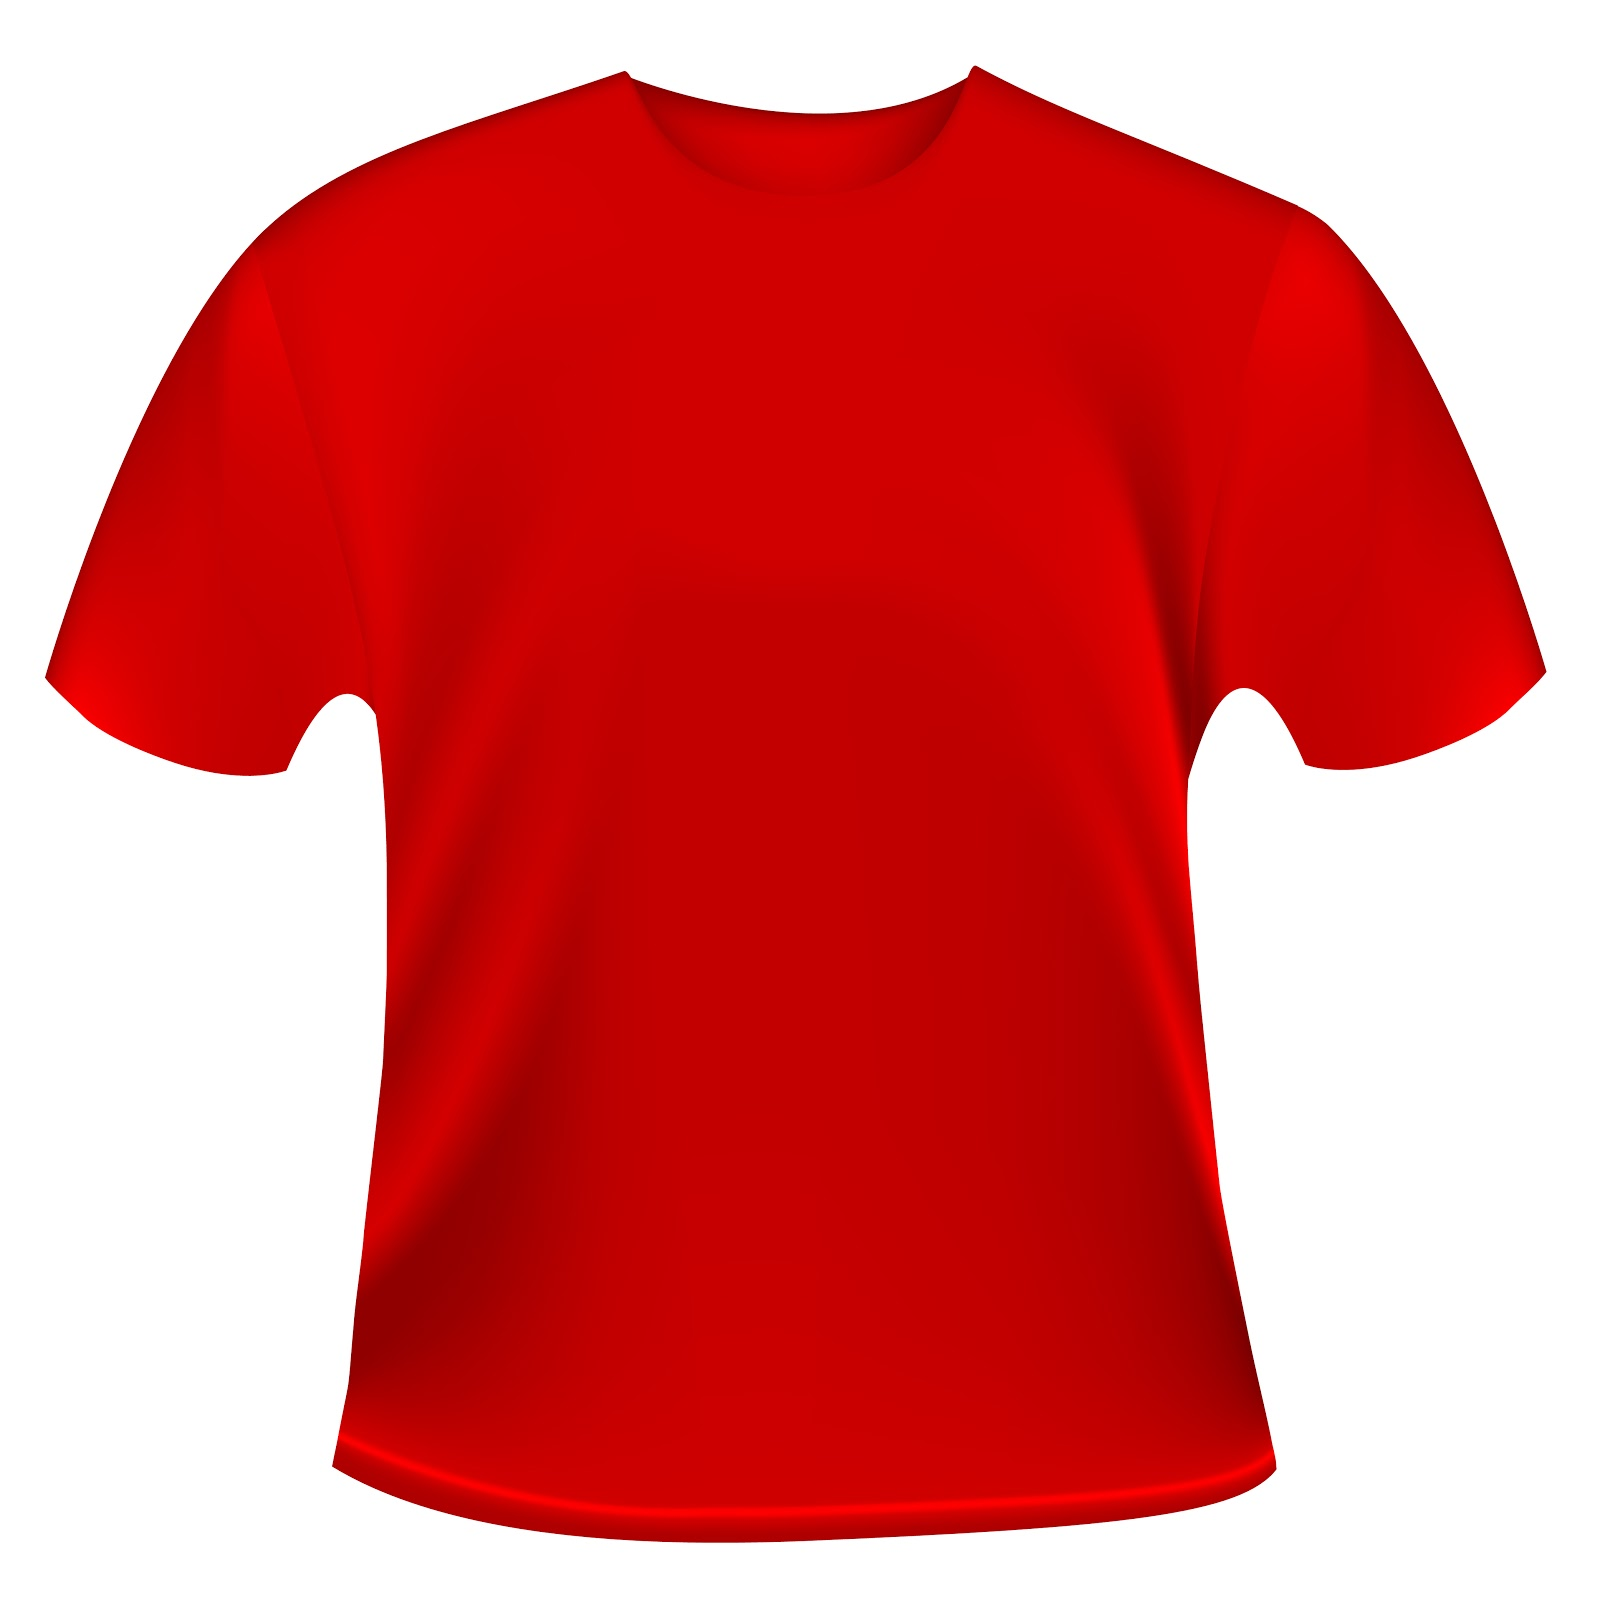 Template T Shirt. photoshop wavy1 everything thats anything. red t ...